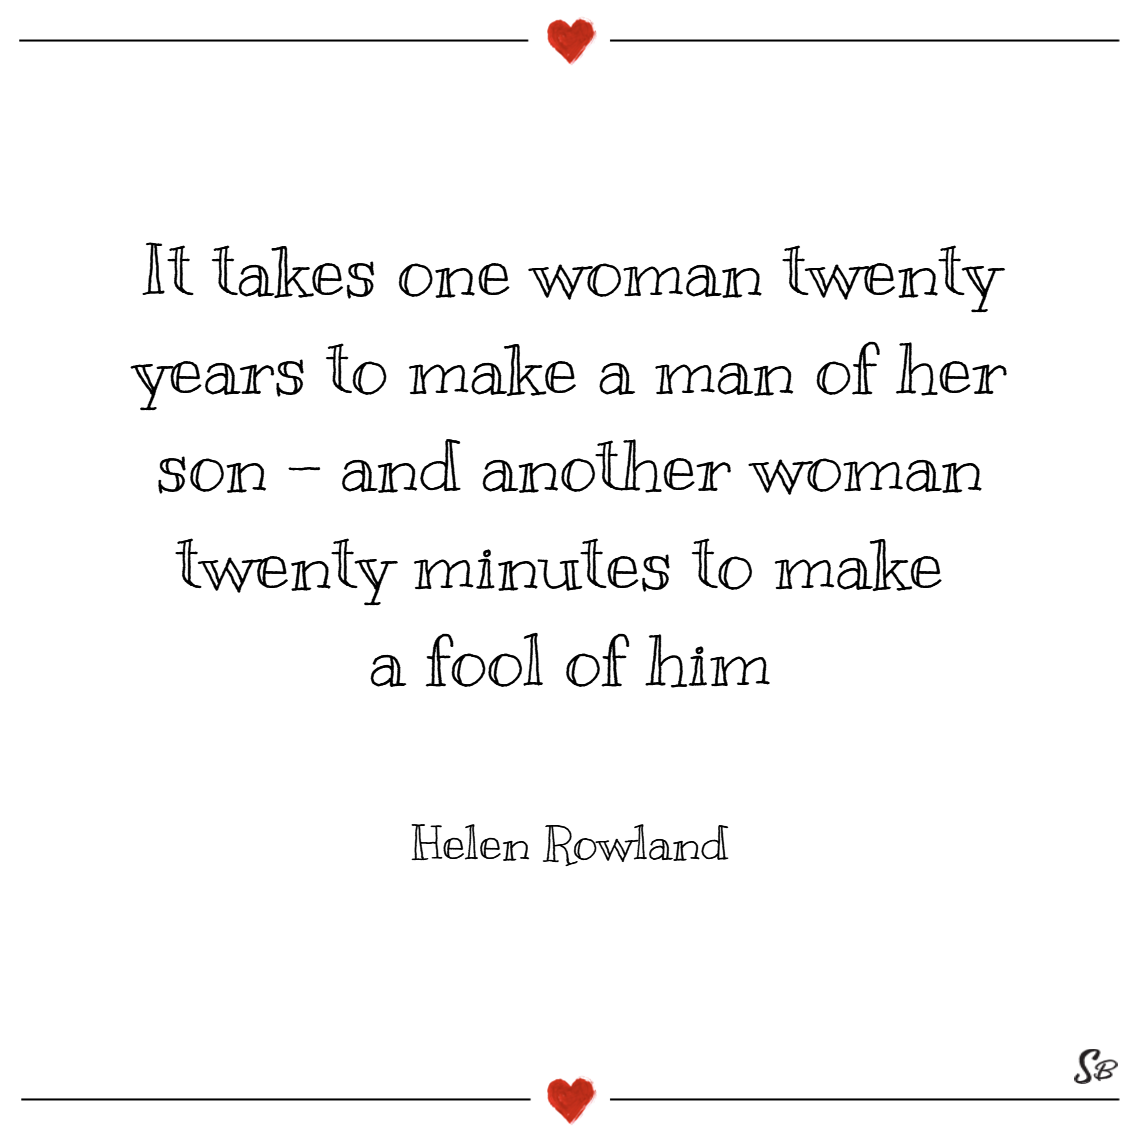 It takes one woman twenty years to make a man of her son and another woman twenty minutes to make a fool of him. – helen rowland